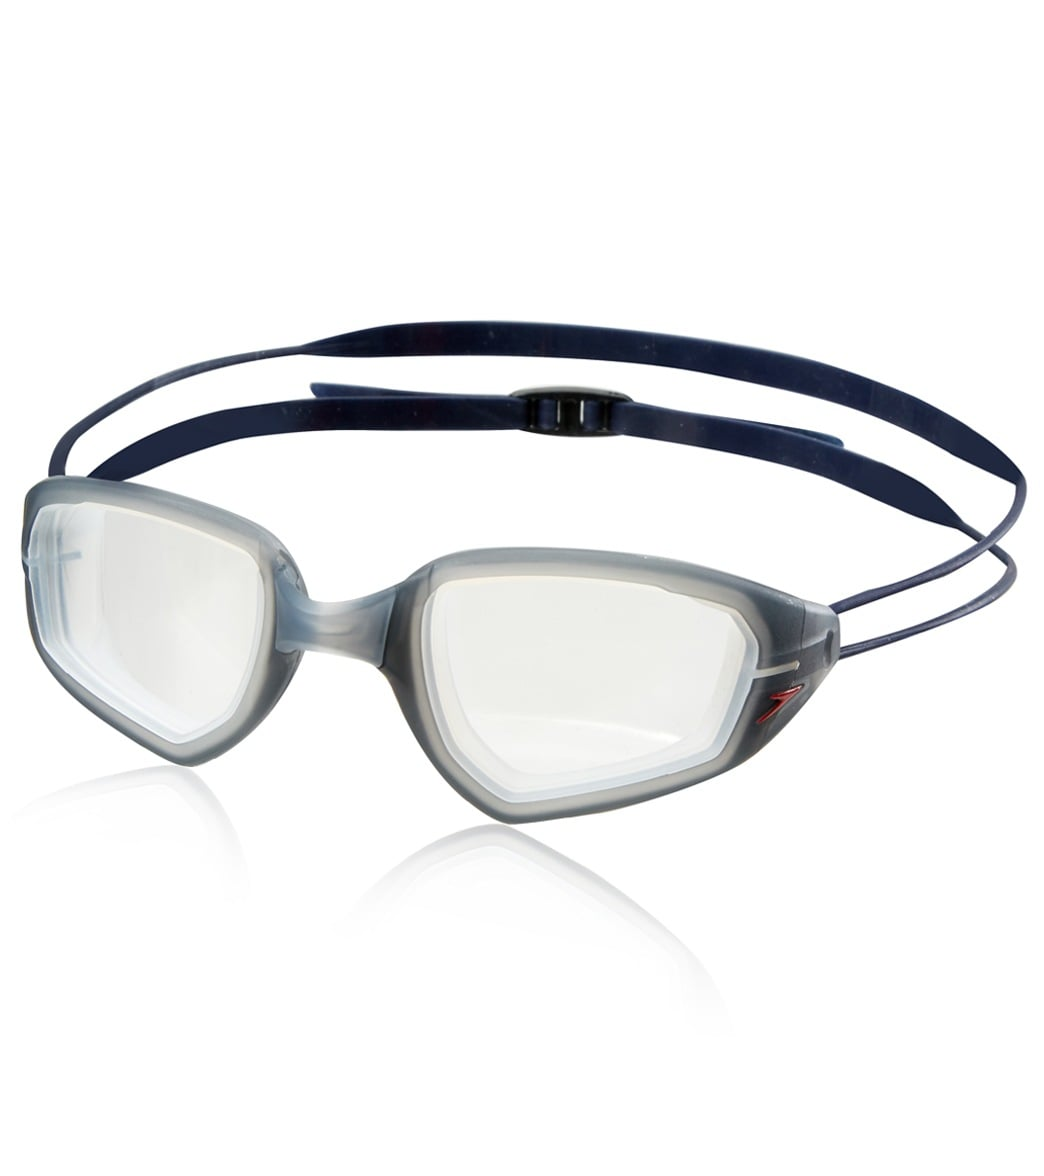 bf5fabe9126 Speedo Covert Goggle at SwimOutlet.com